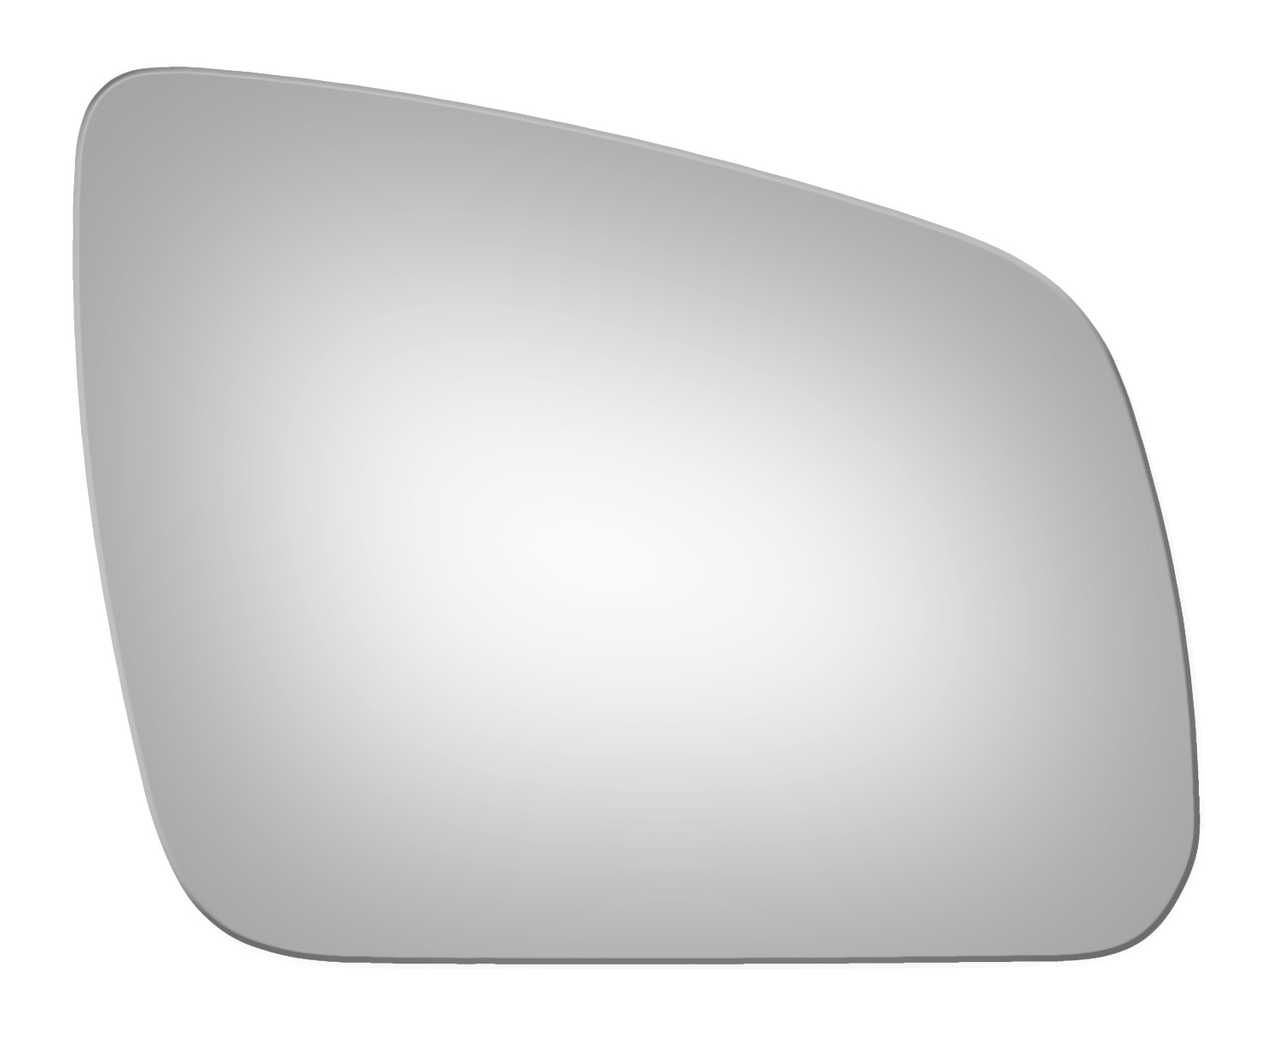 2010 mercedes benz c300 passenger side mirror 5333 for Mercedes benz c300 side mirror glass